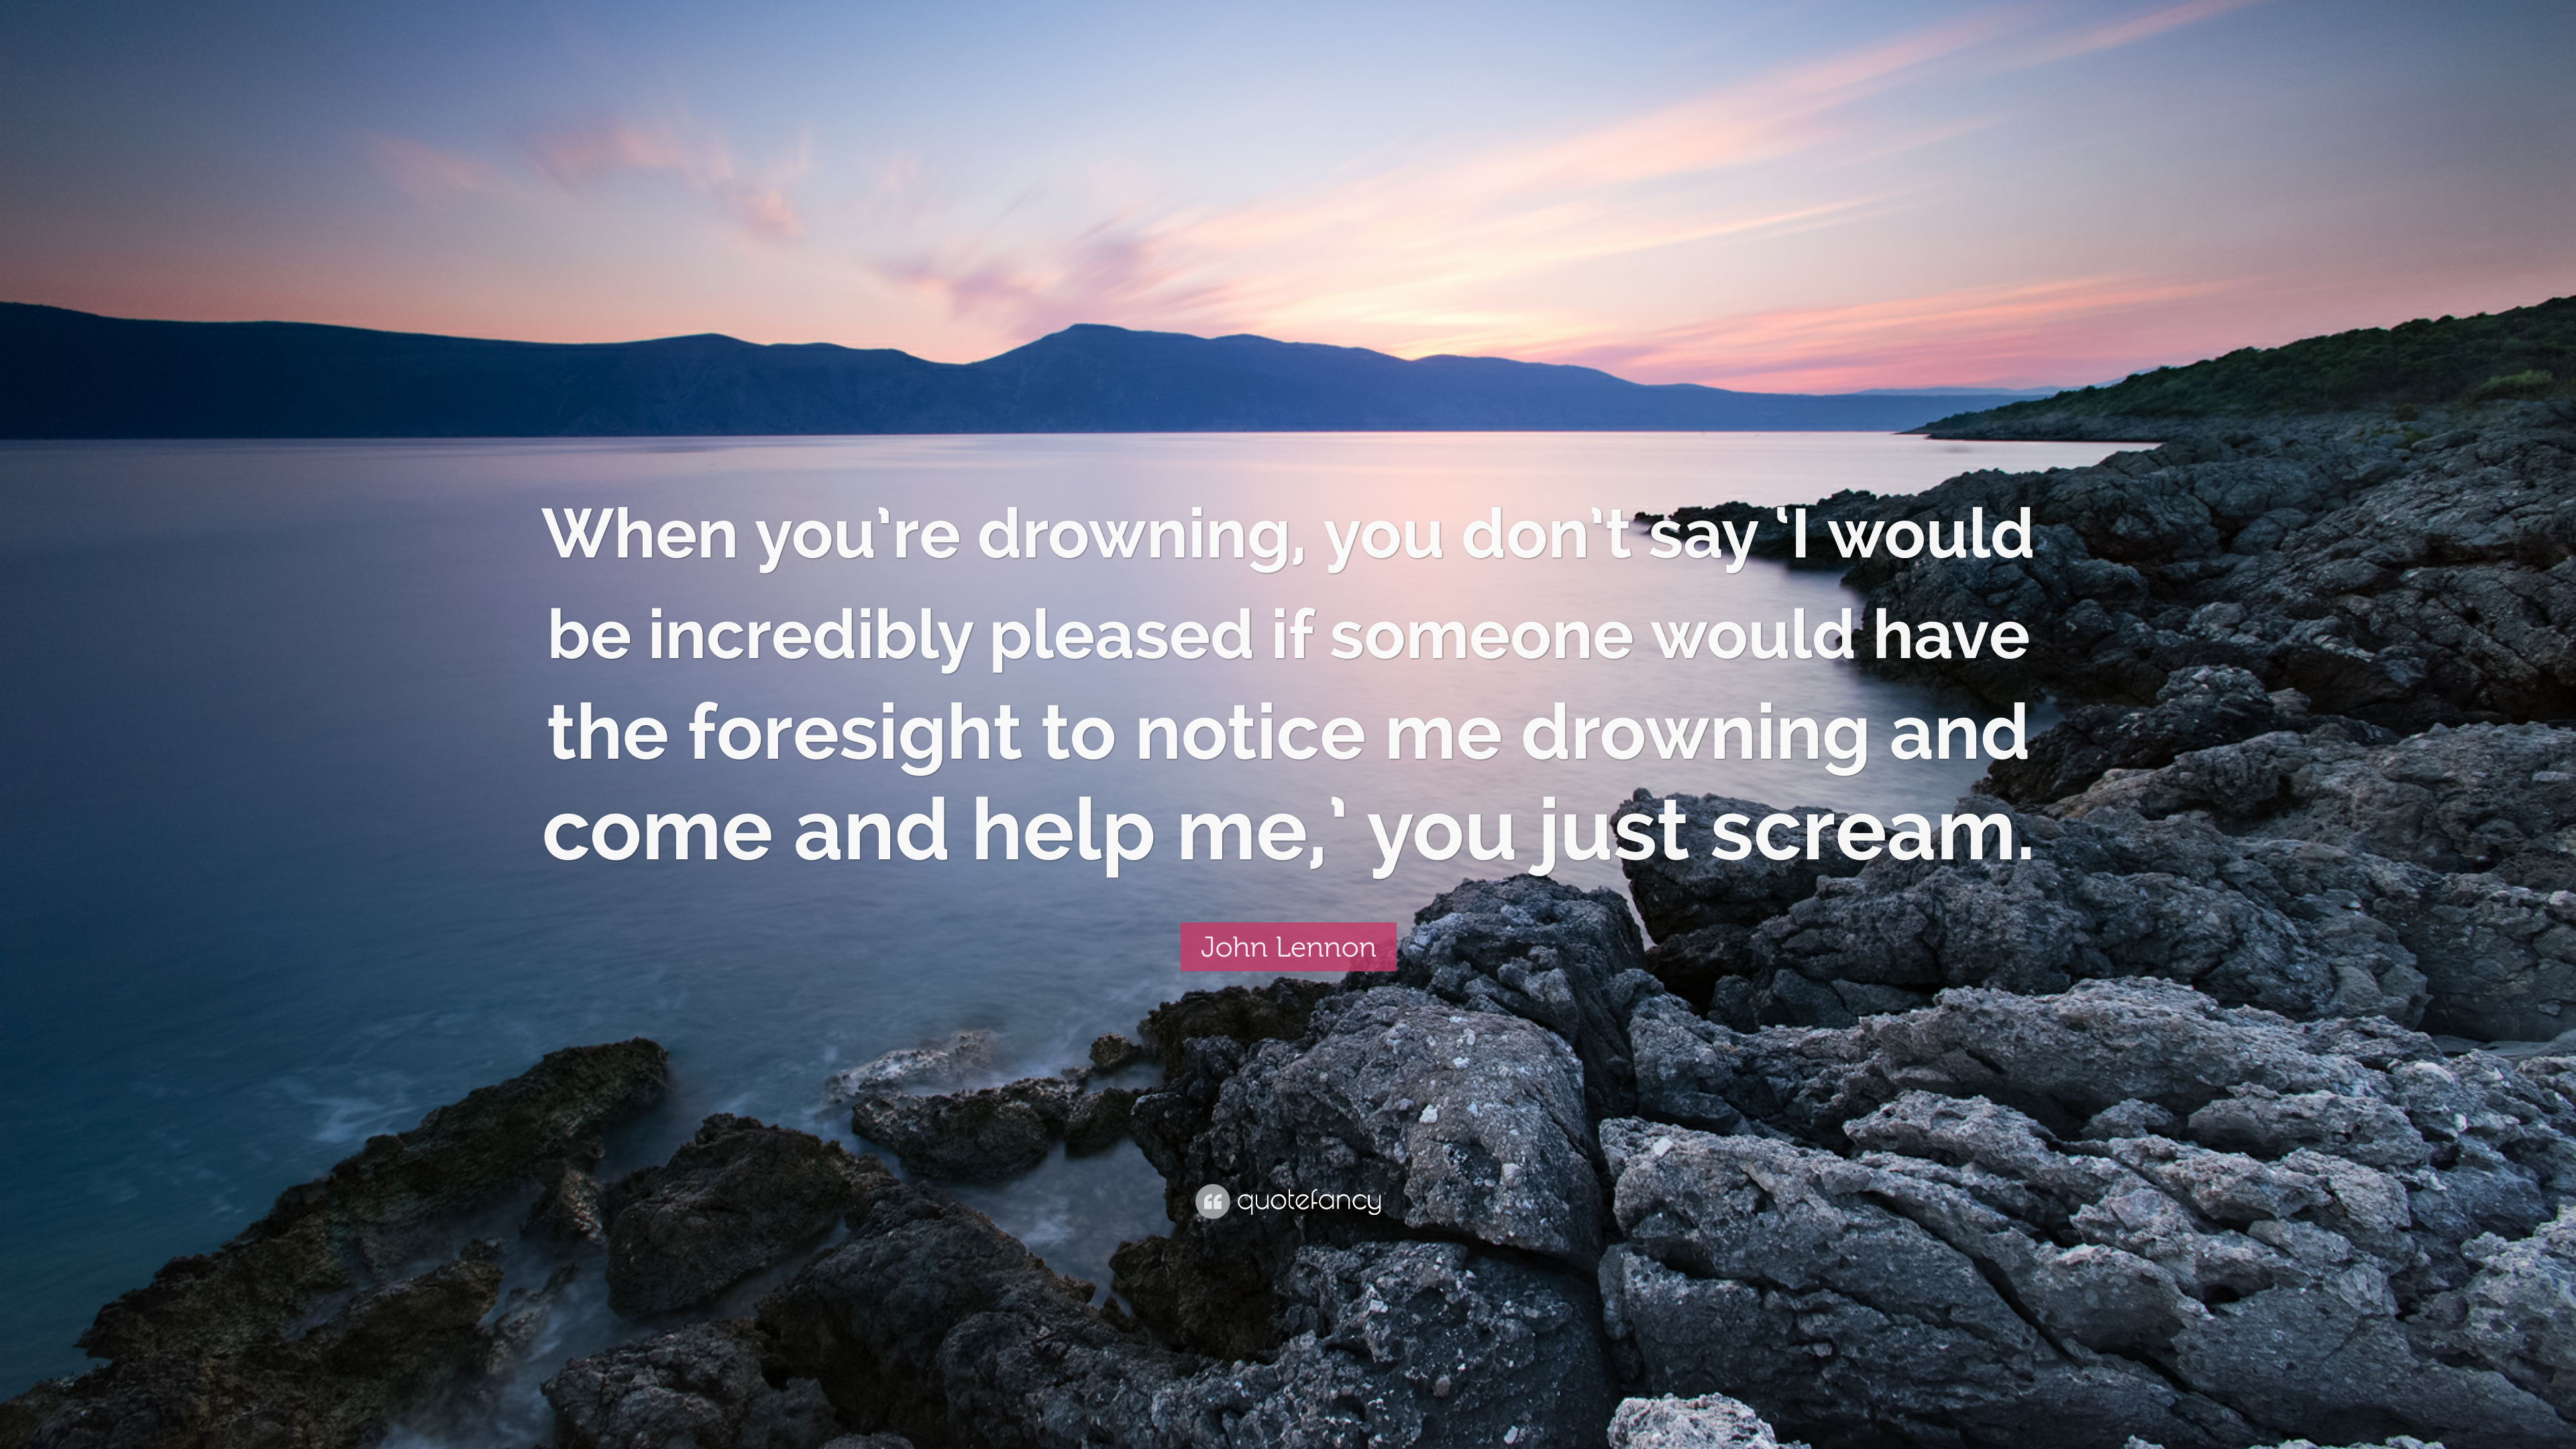 John Lennon Quote When Youre Drowning You Dont Say I Would Be